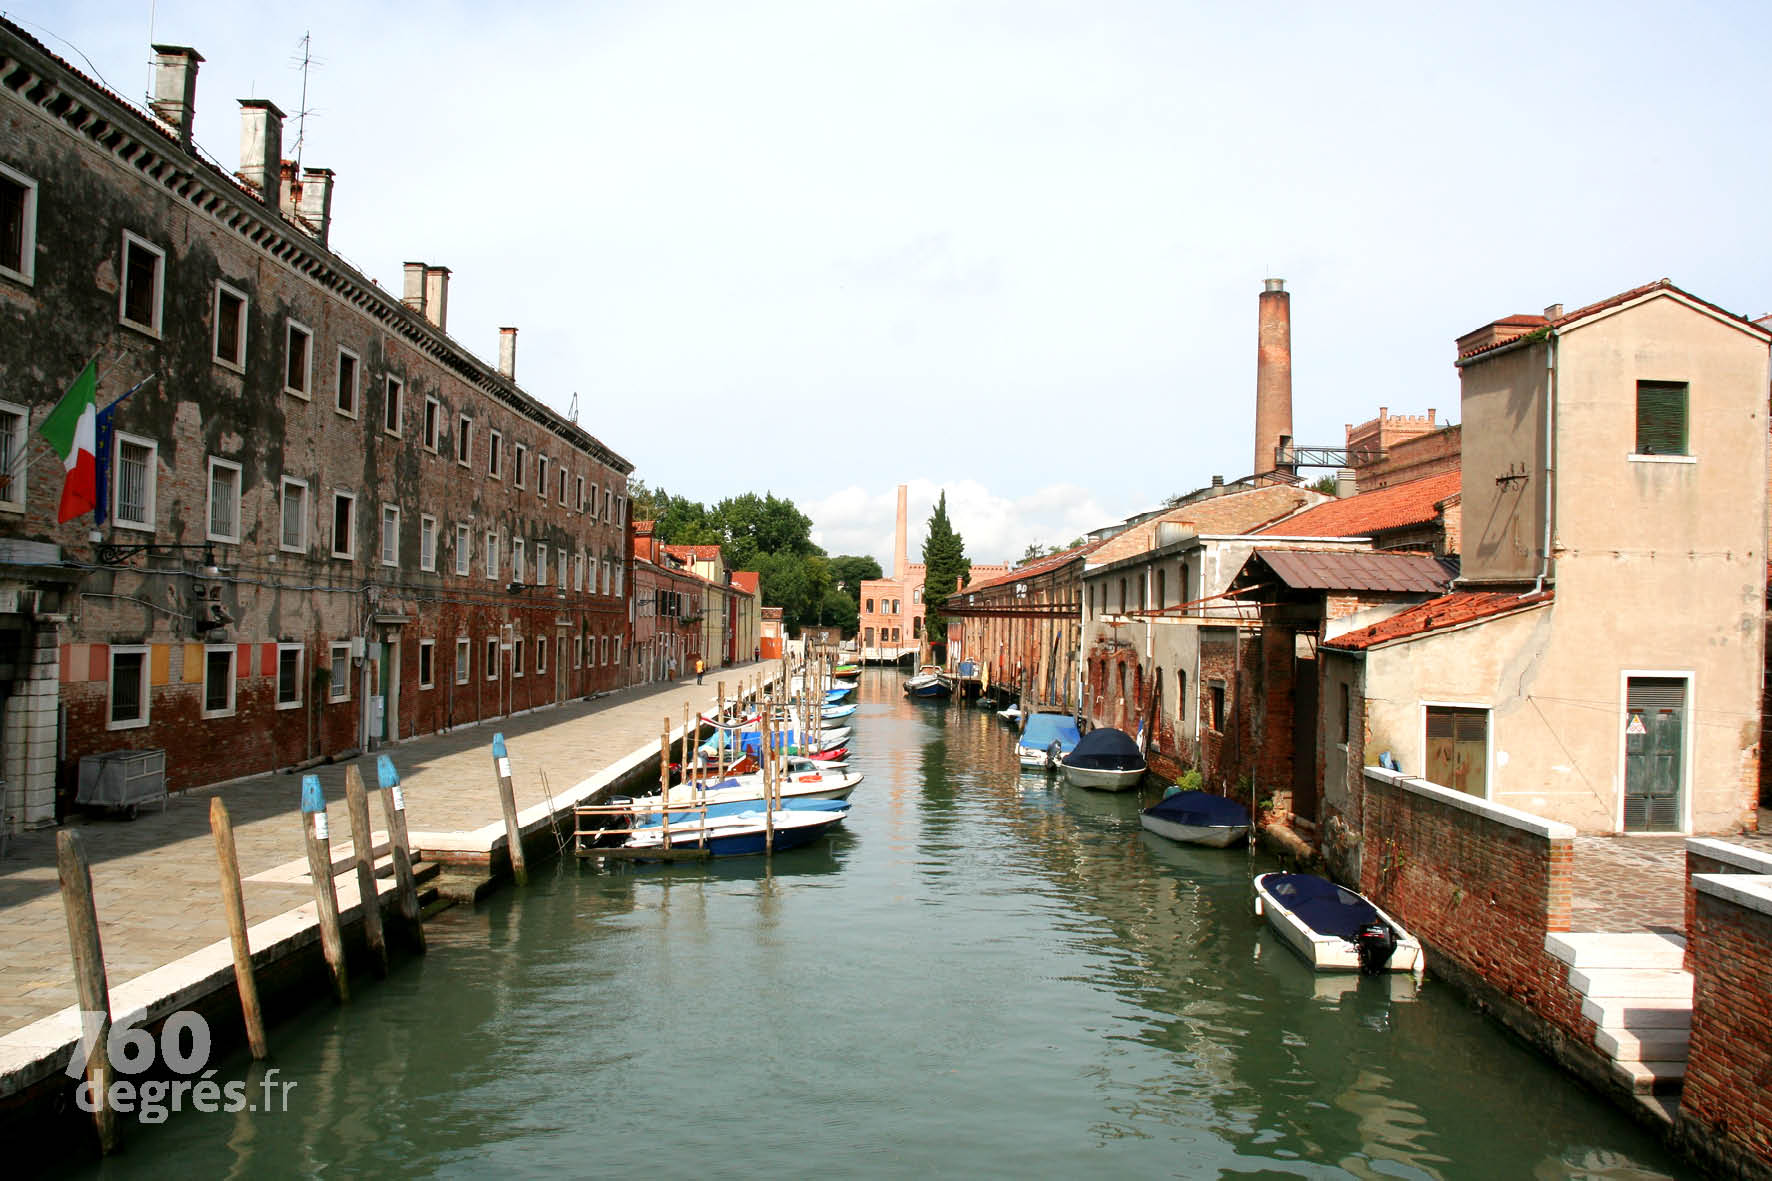 photos-760degres-venise-38